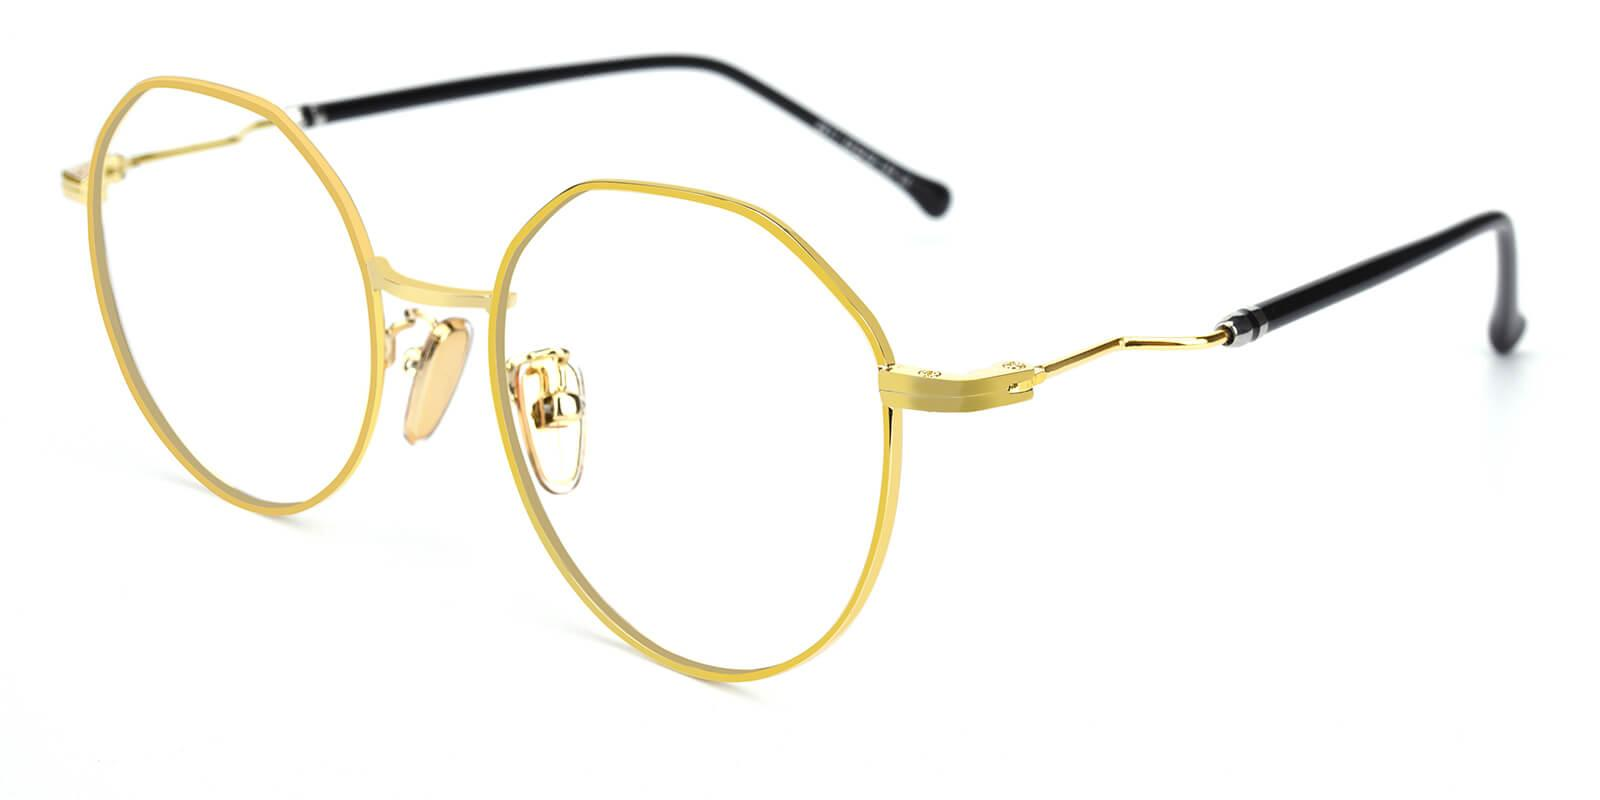 Clarker-Gold-Geometric-Metal-Eyeglasses-additional1